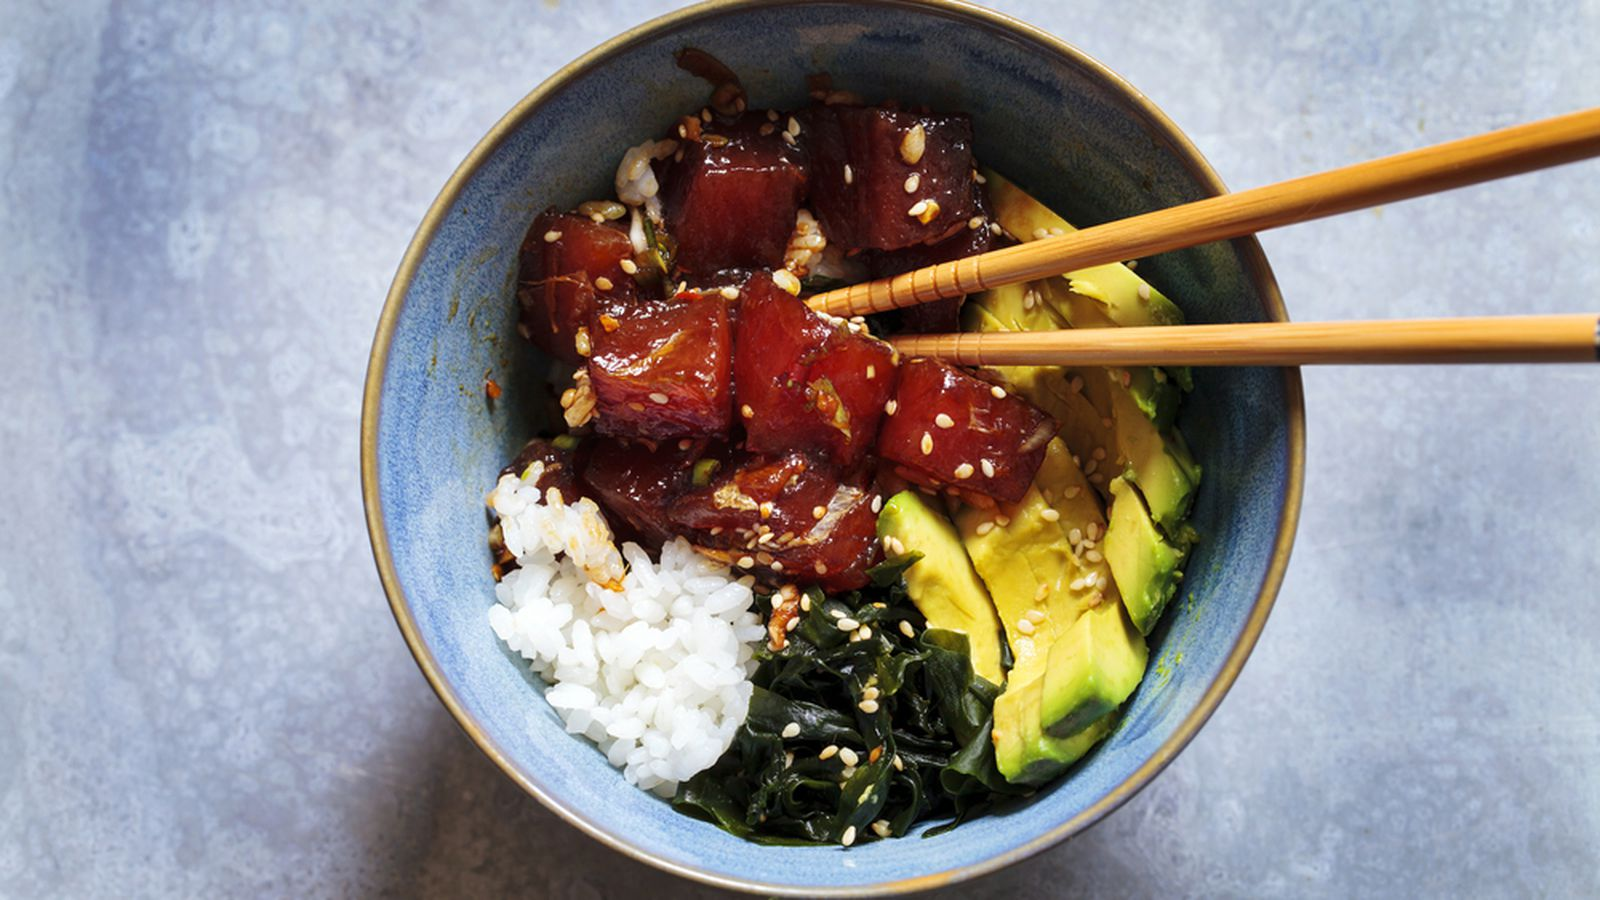 Poke Bowls And Spam Musubi Coming To Downtown This Summer